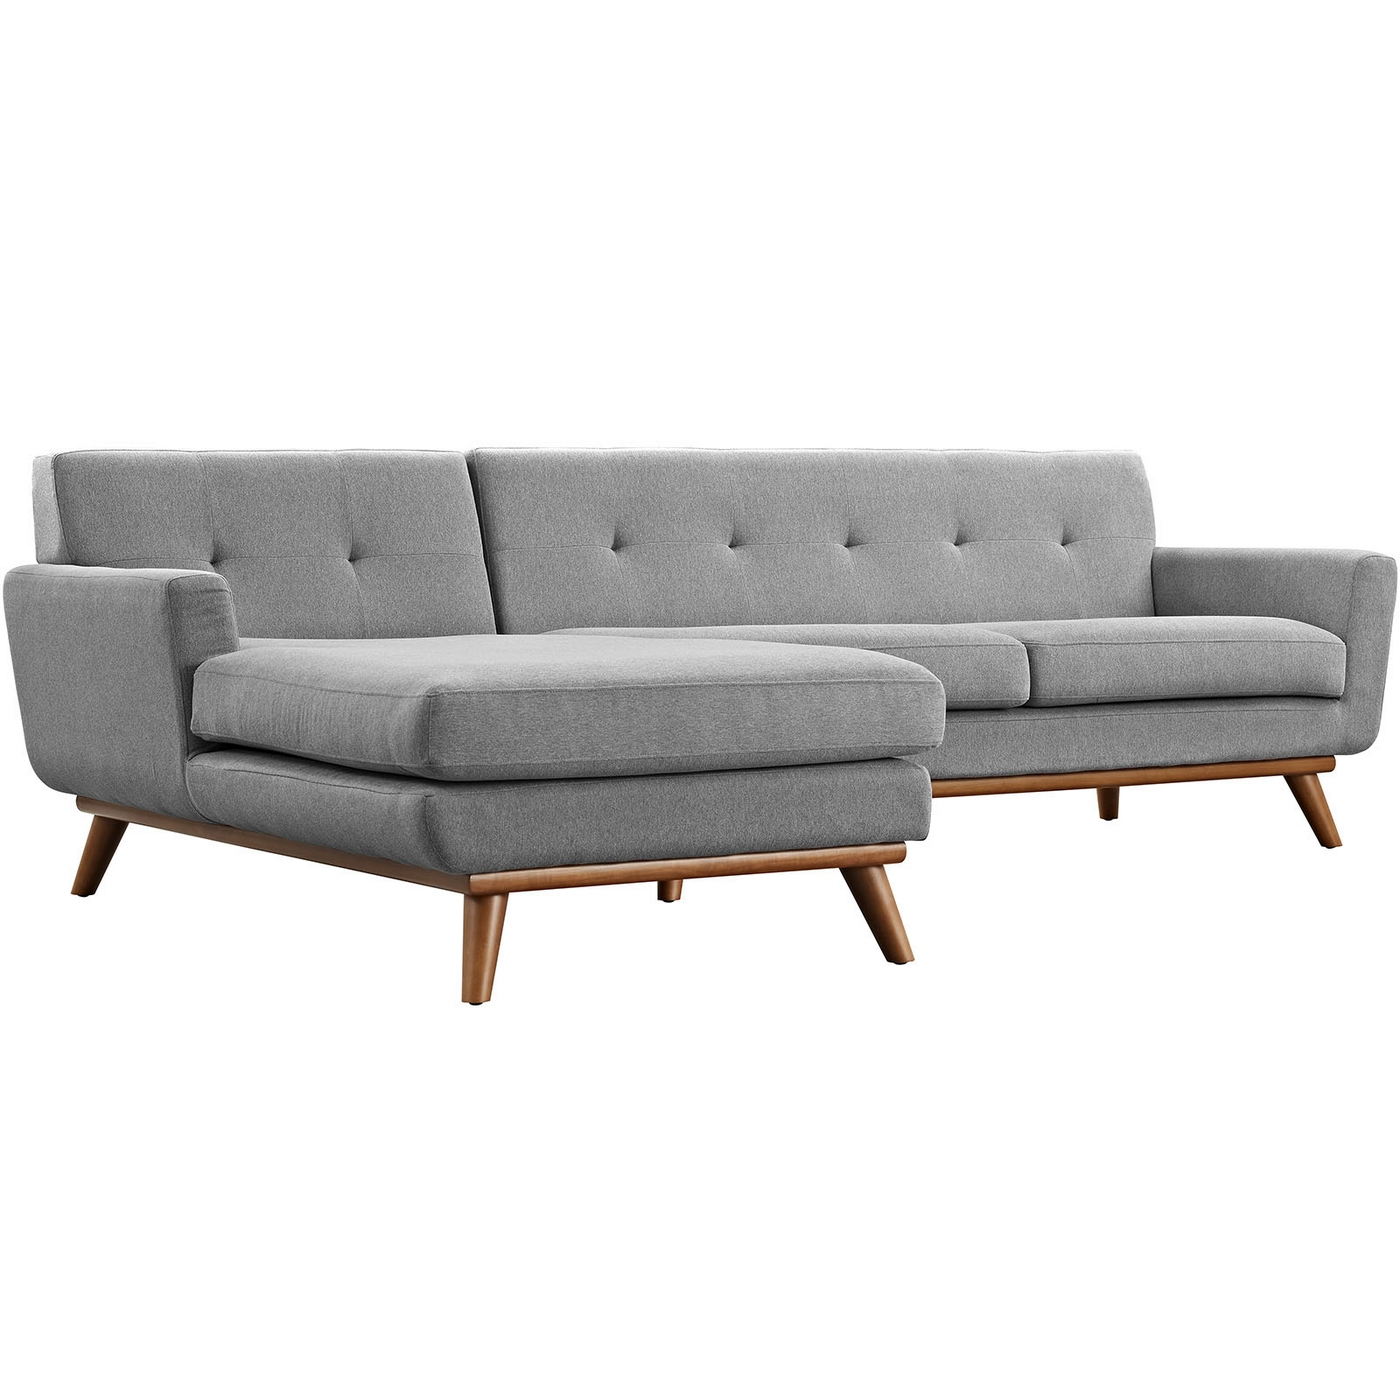 Details About Mid Century Modern Engage Left Facing Sectional Sofa Expectation Gray